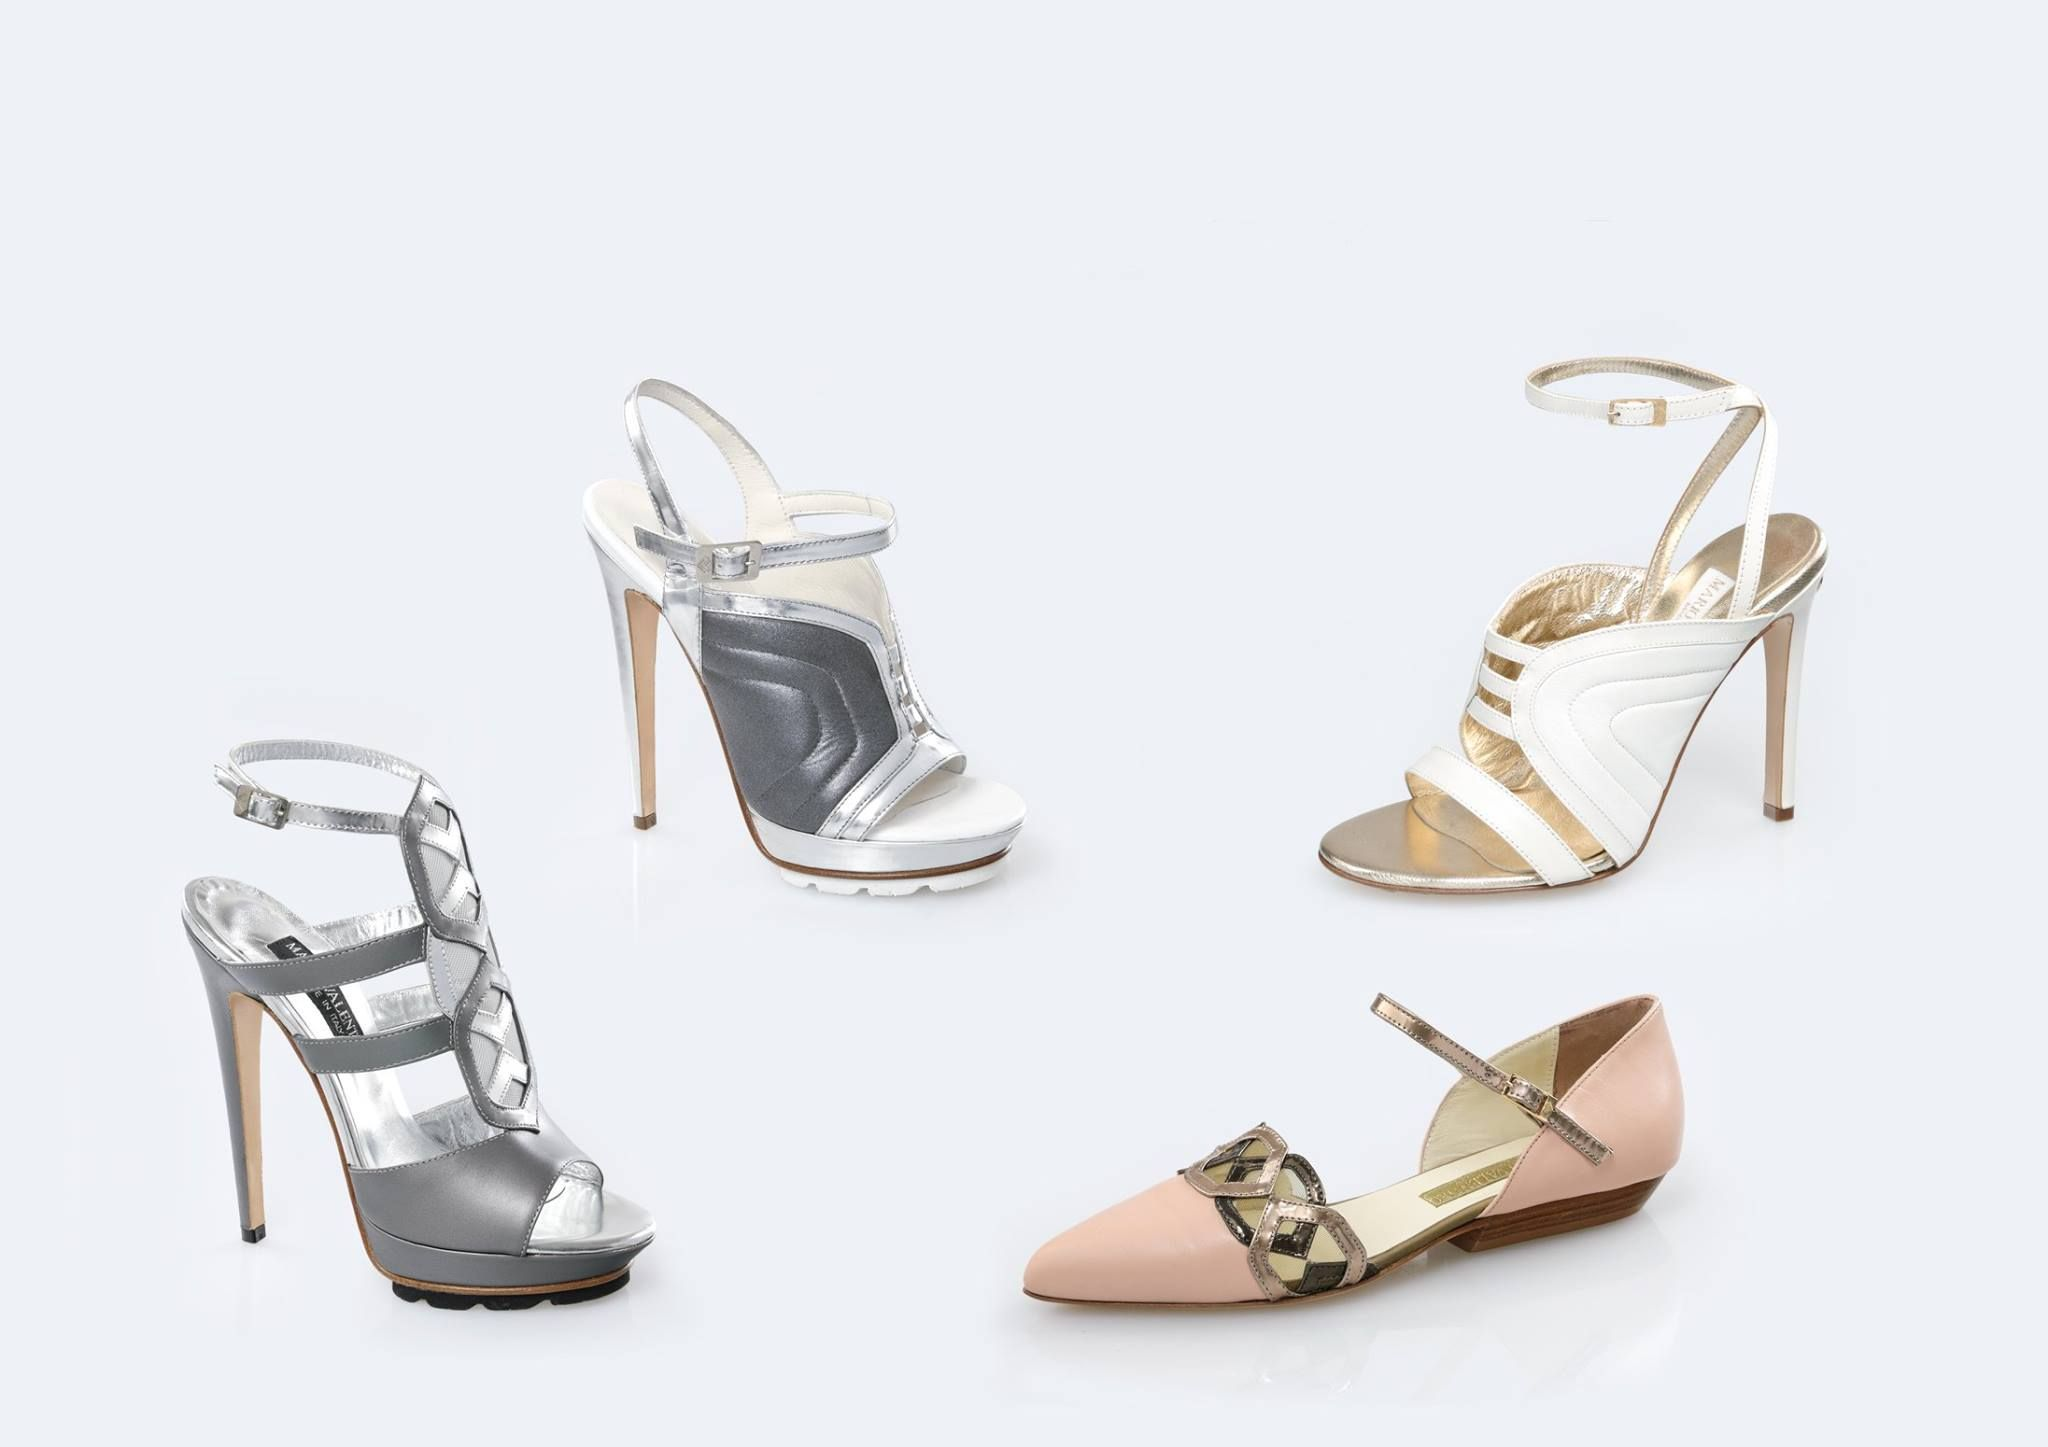 MV S/S 16 #shoes #fashion #heels #design #leather #sandals #luxury